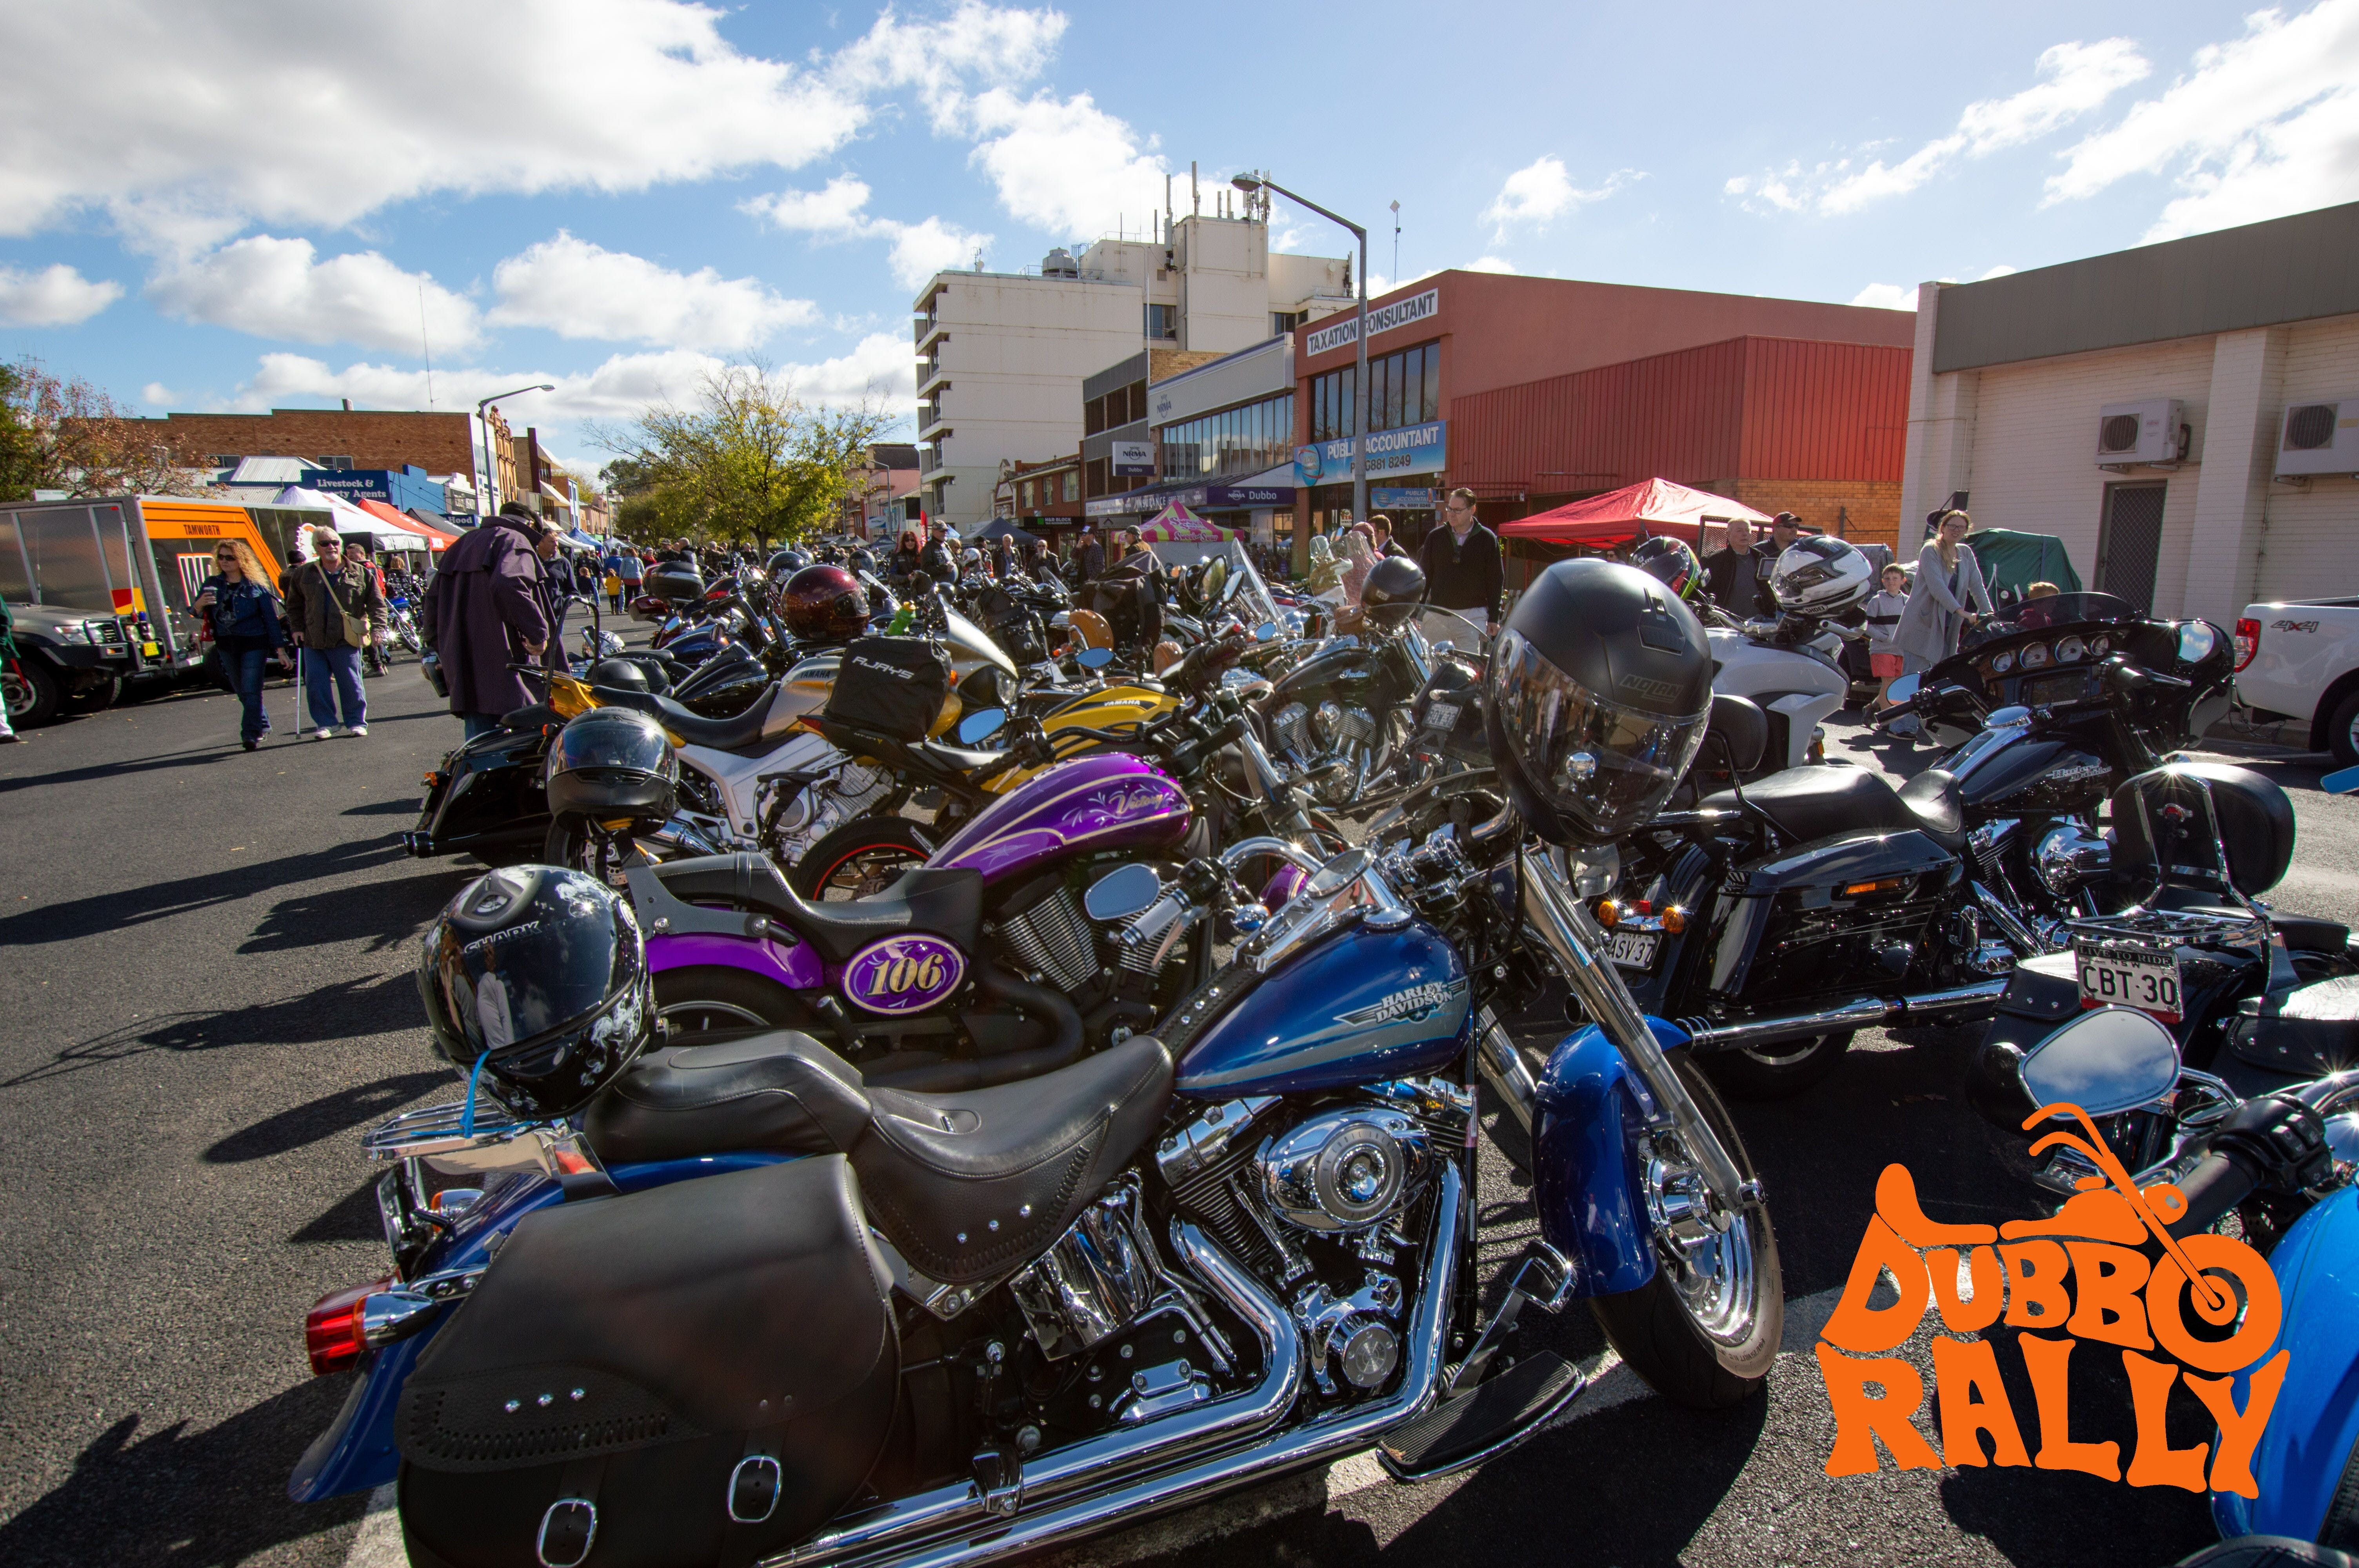 Dubbo Motor Bike Rally - WA Accommodation